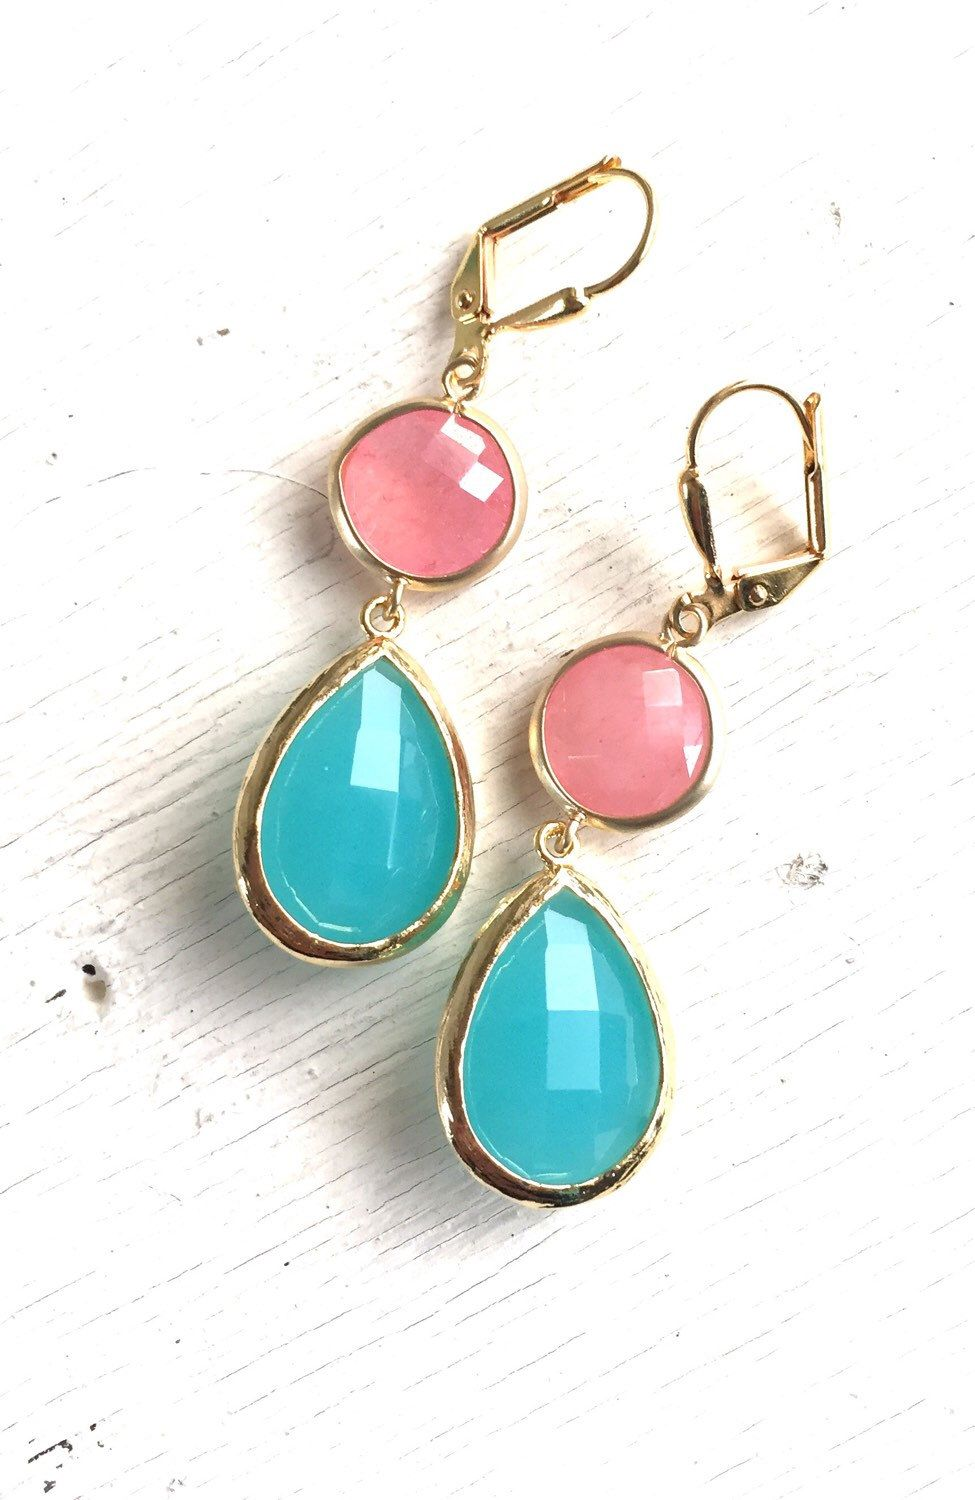 Coral and Turquoise Dangle Earrings | Jewelry | Pinterest | Dangles ...